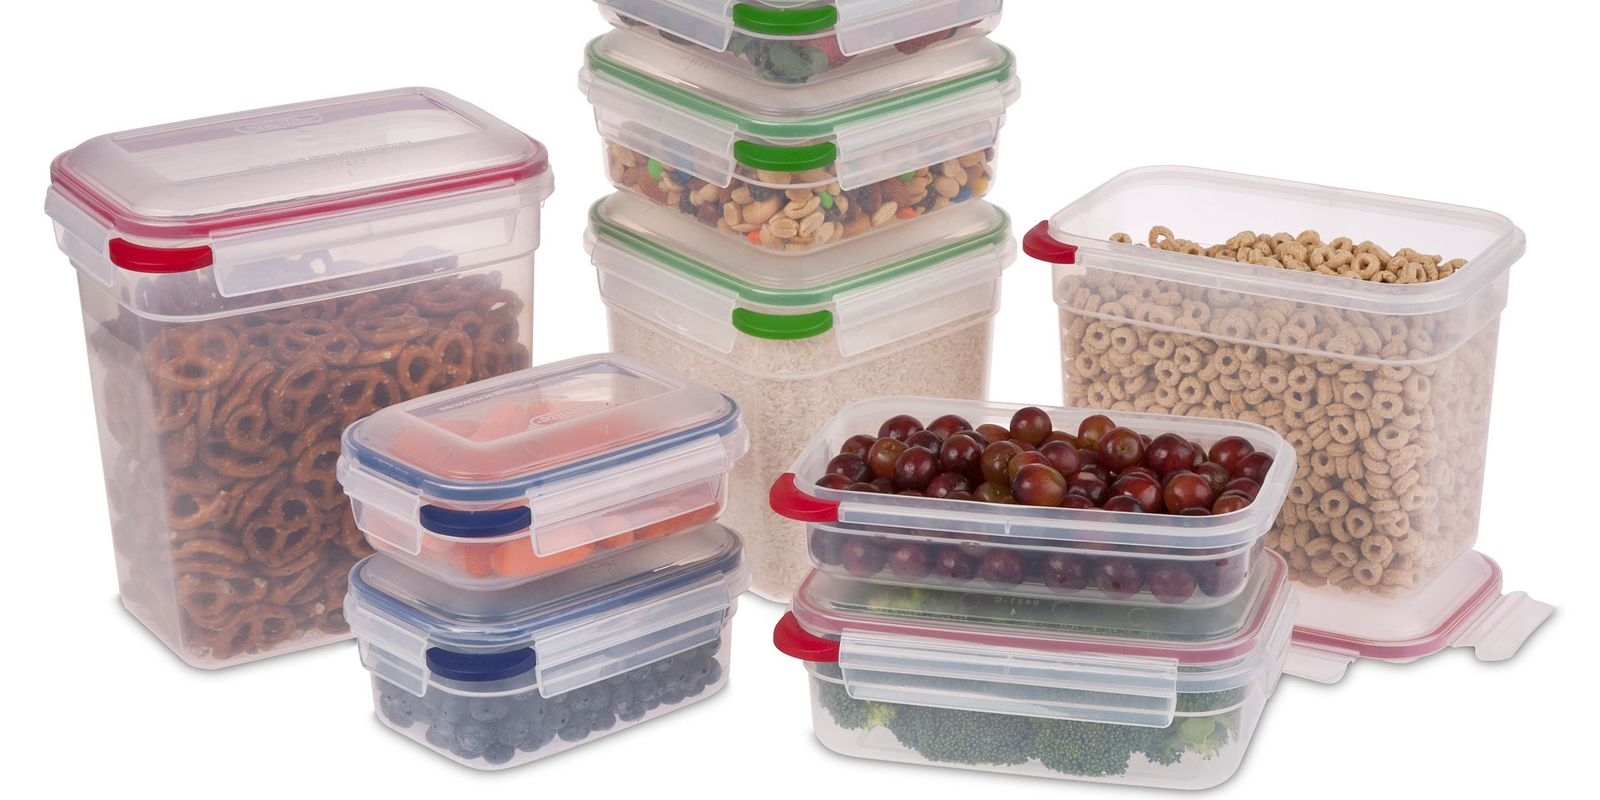 Professional Food Storage Containers Part - 15: March 2013. Food Storage Containers